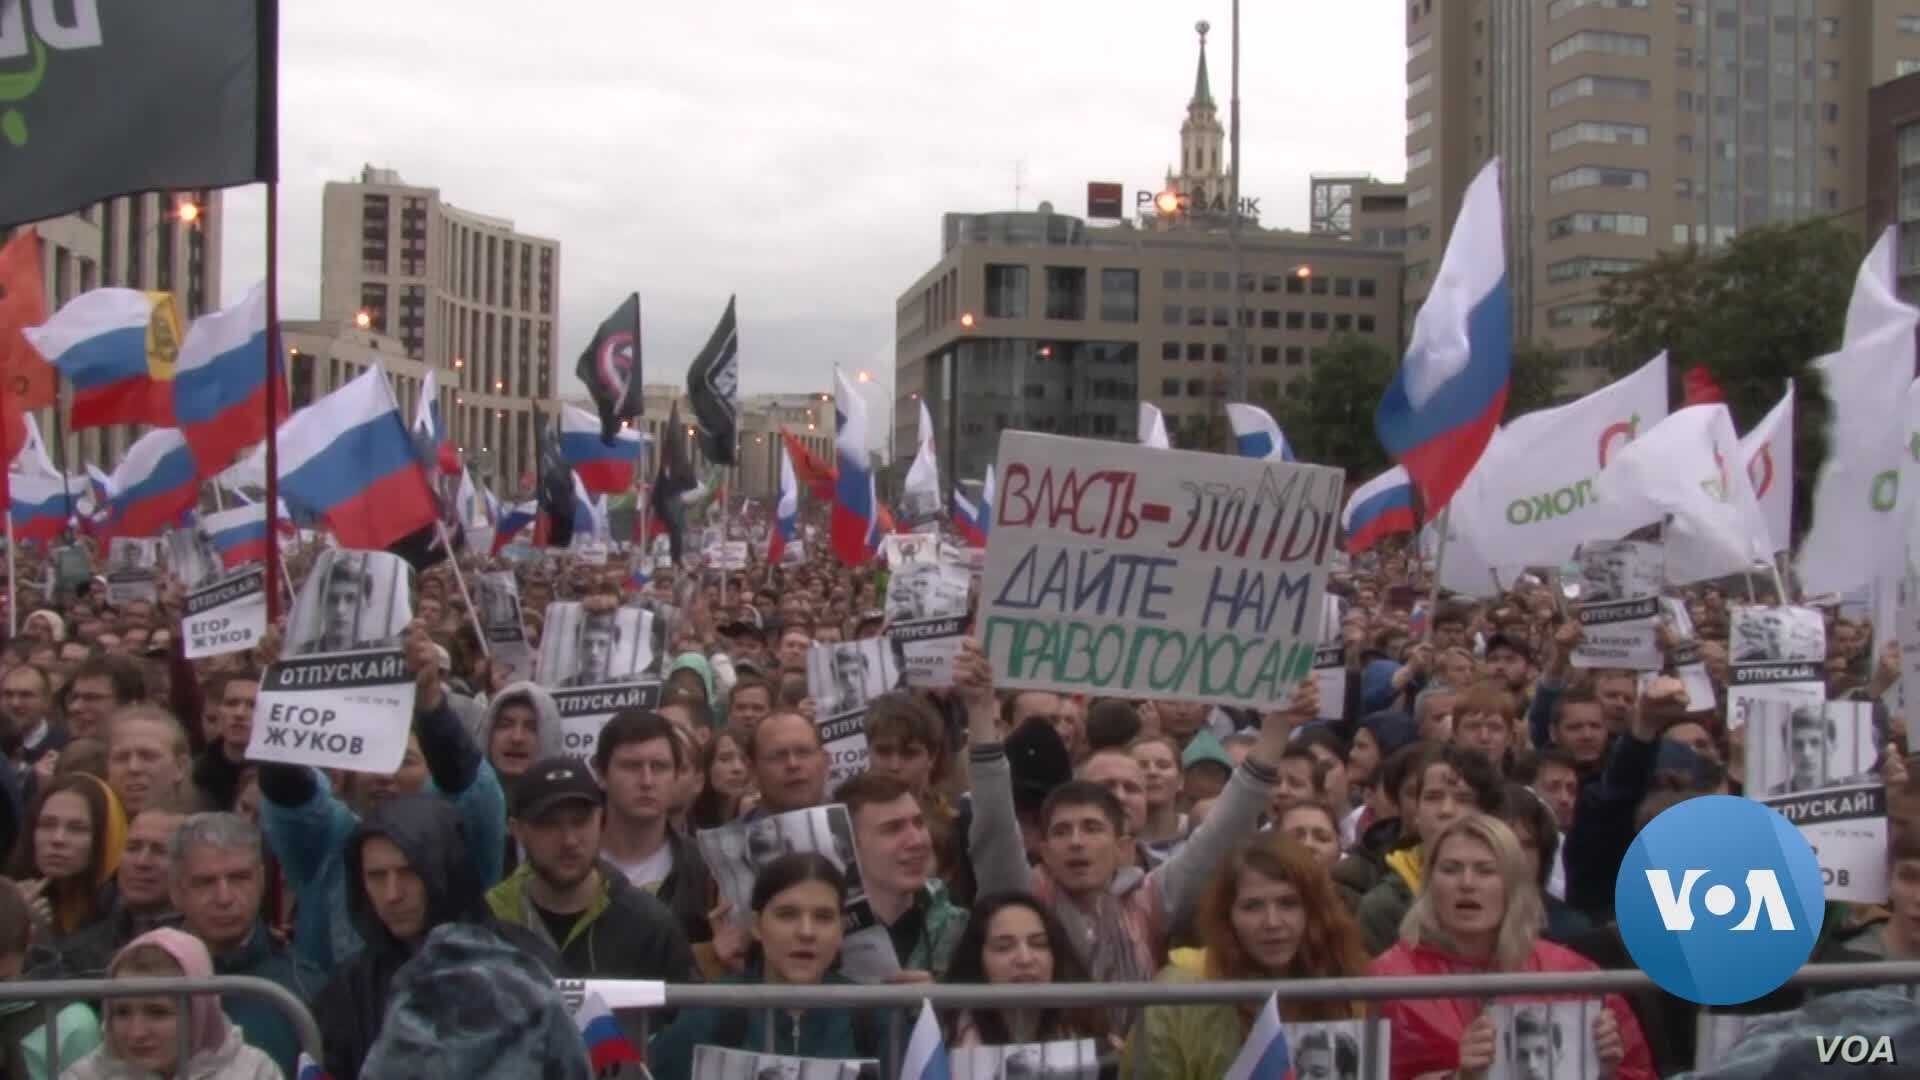 No Longer Apathetic, Russia's Youth Rallies for Change